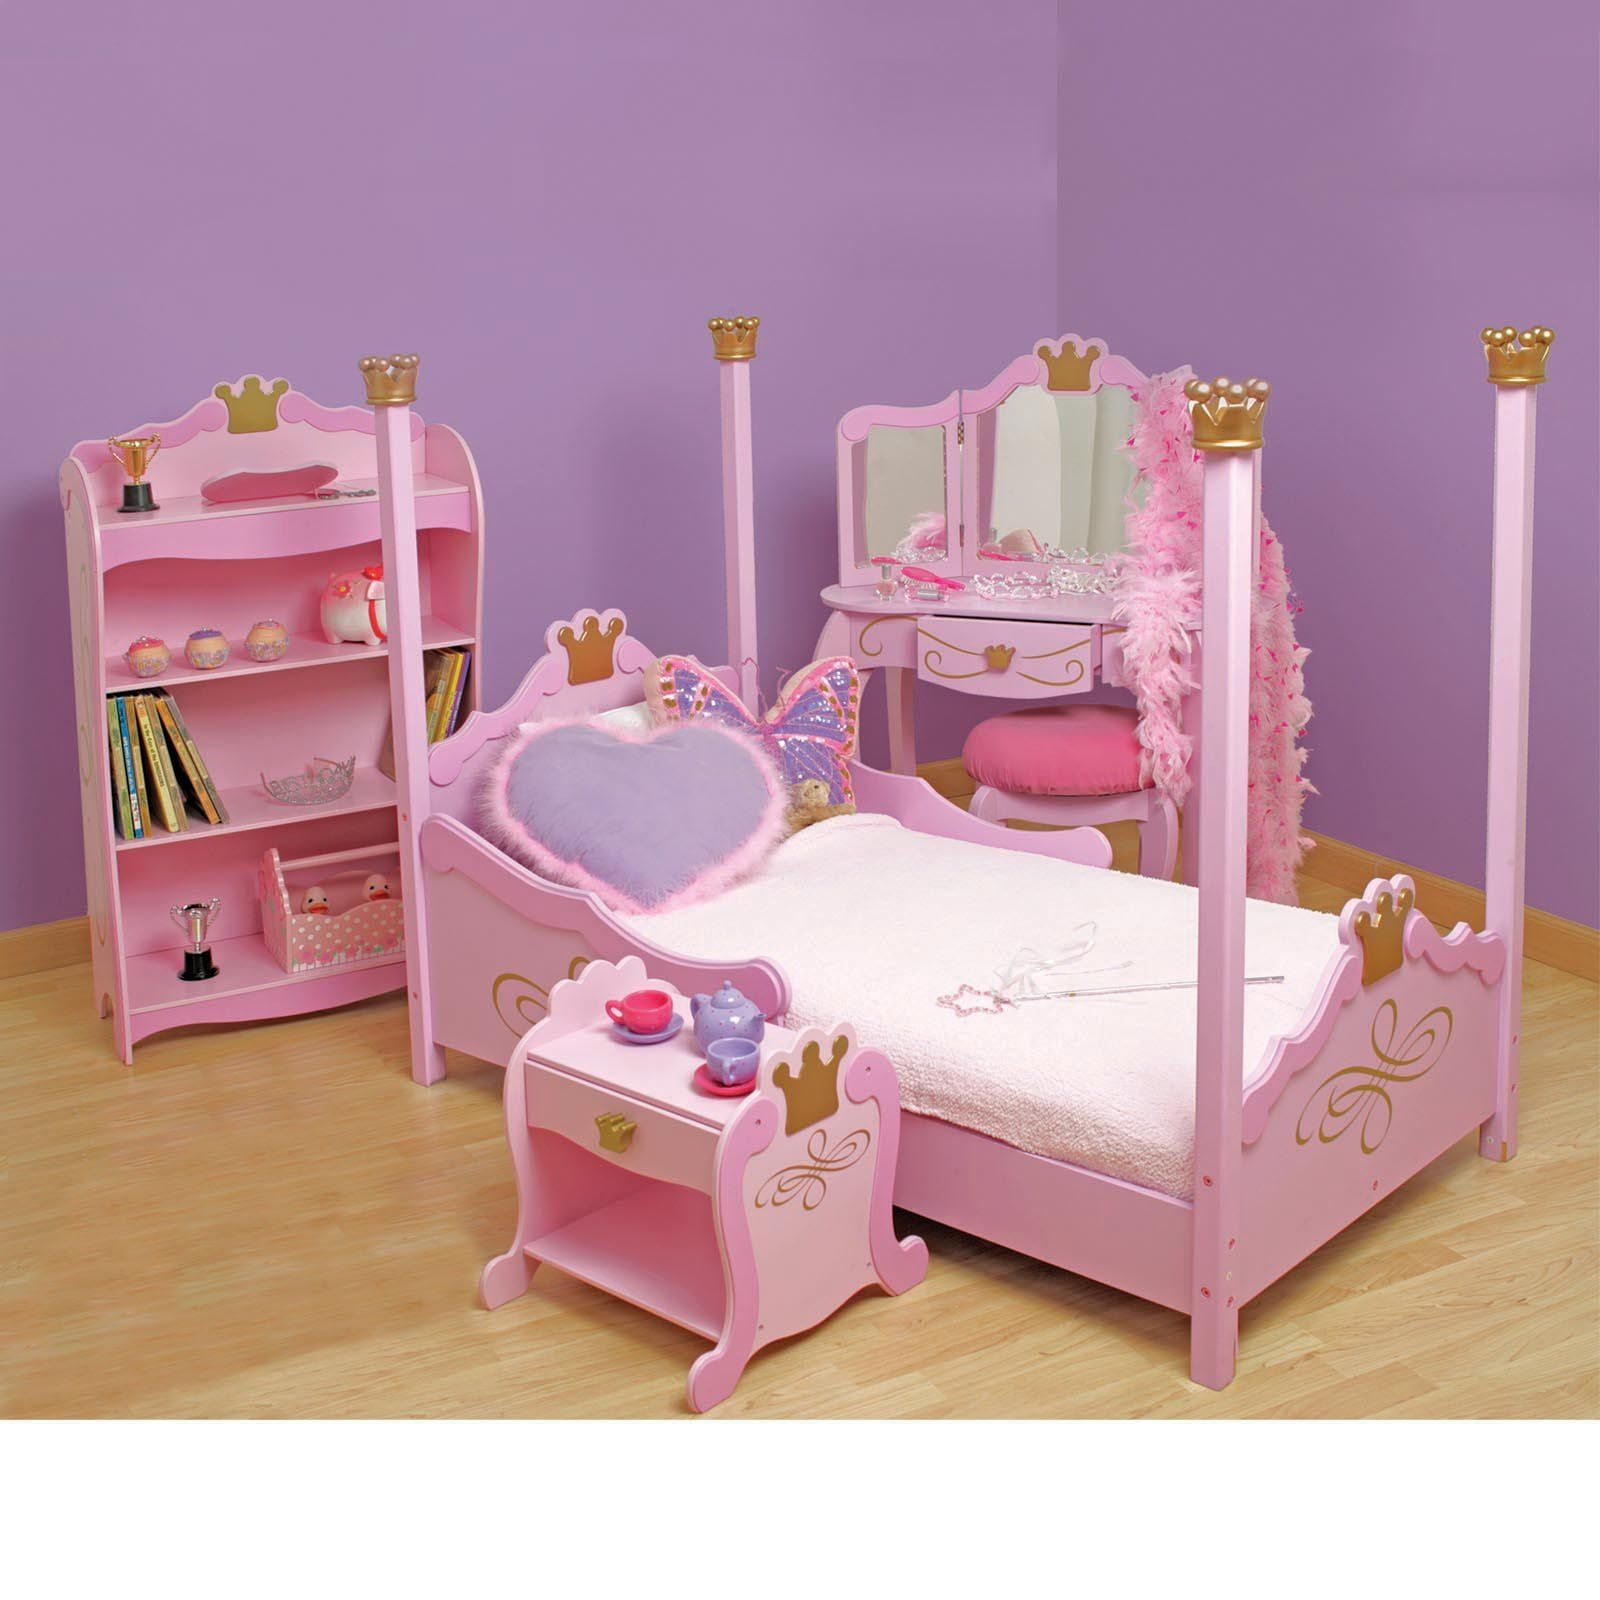 Kids Bed Accessories Cute Toddler Beds For Girls Http Decor Aitherslight